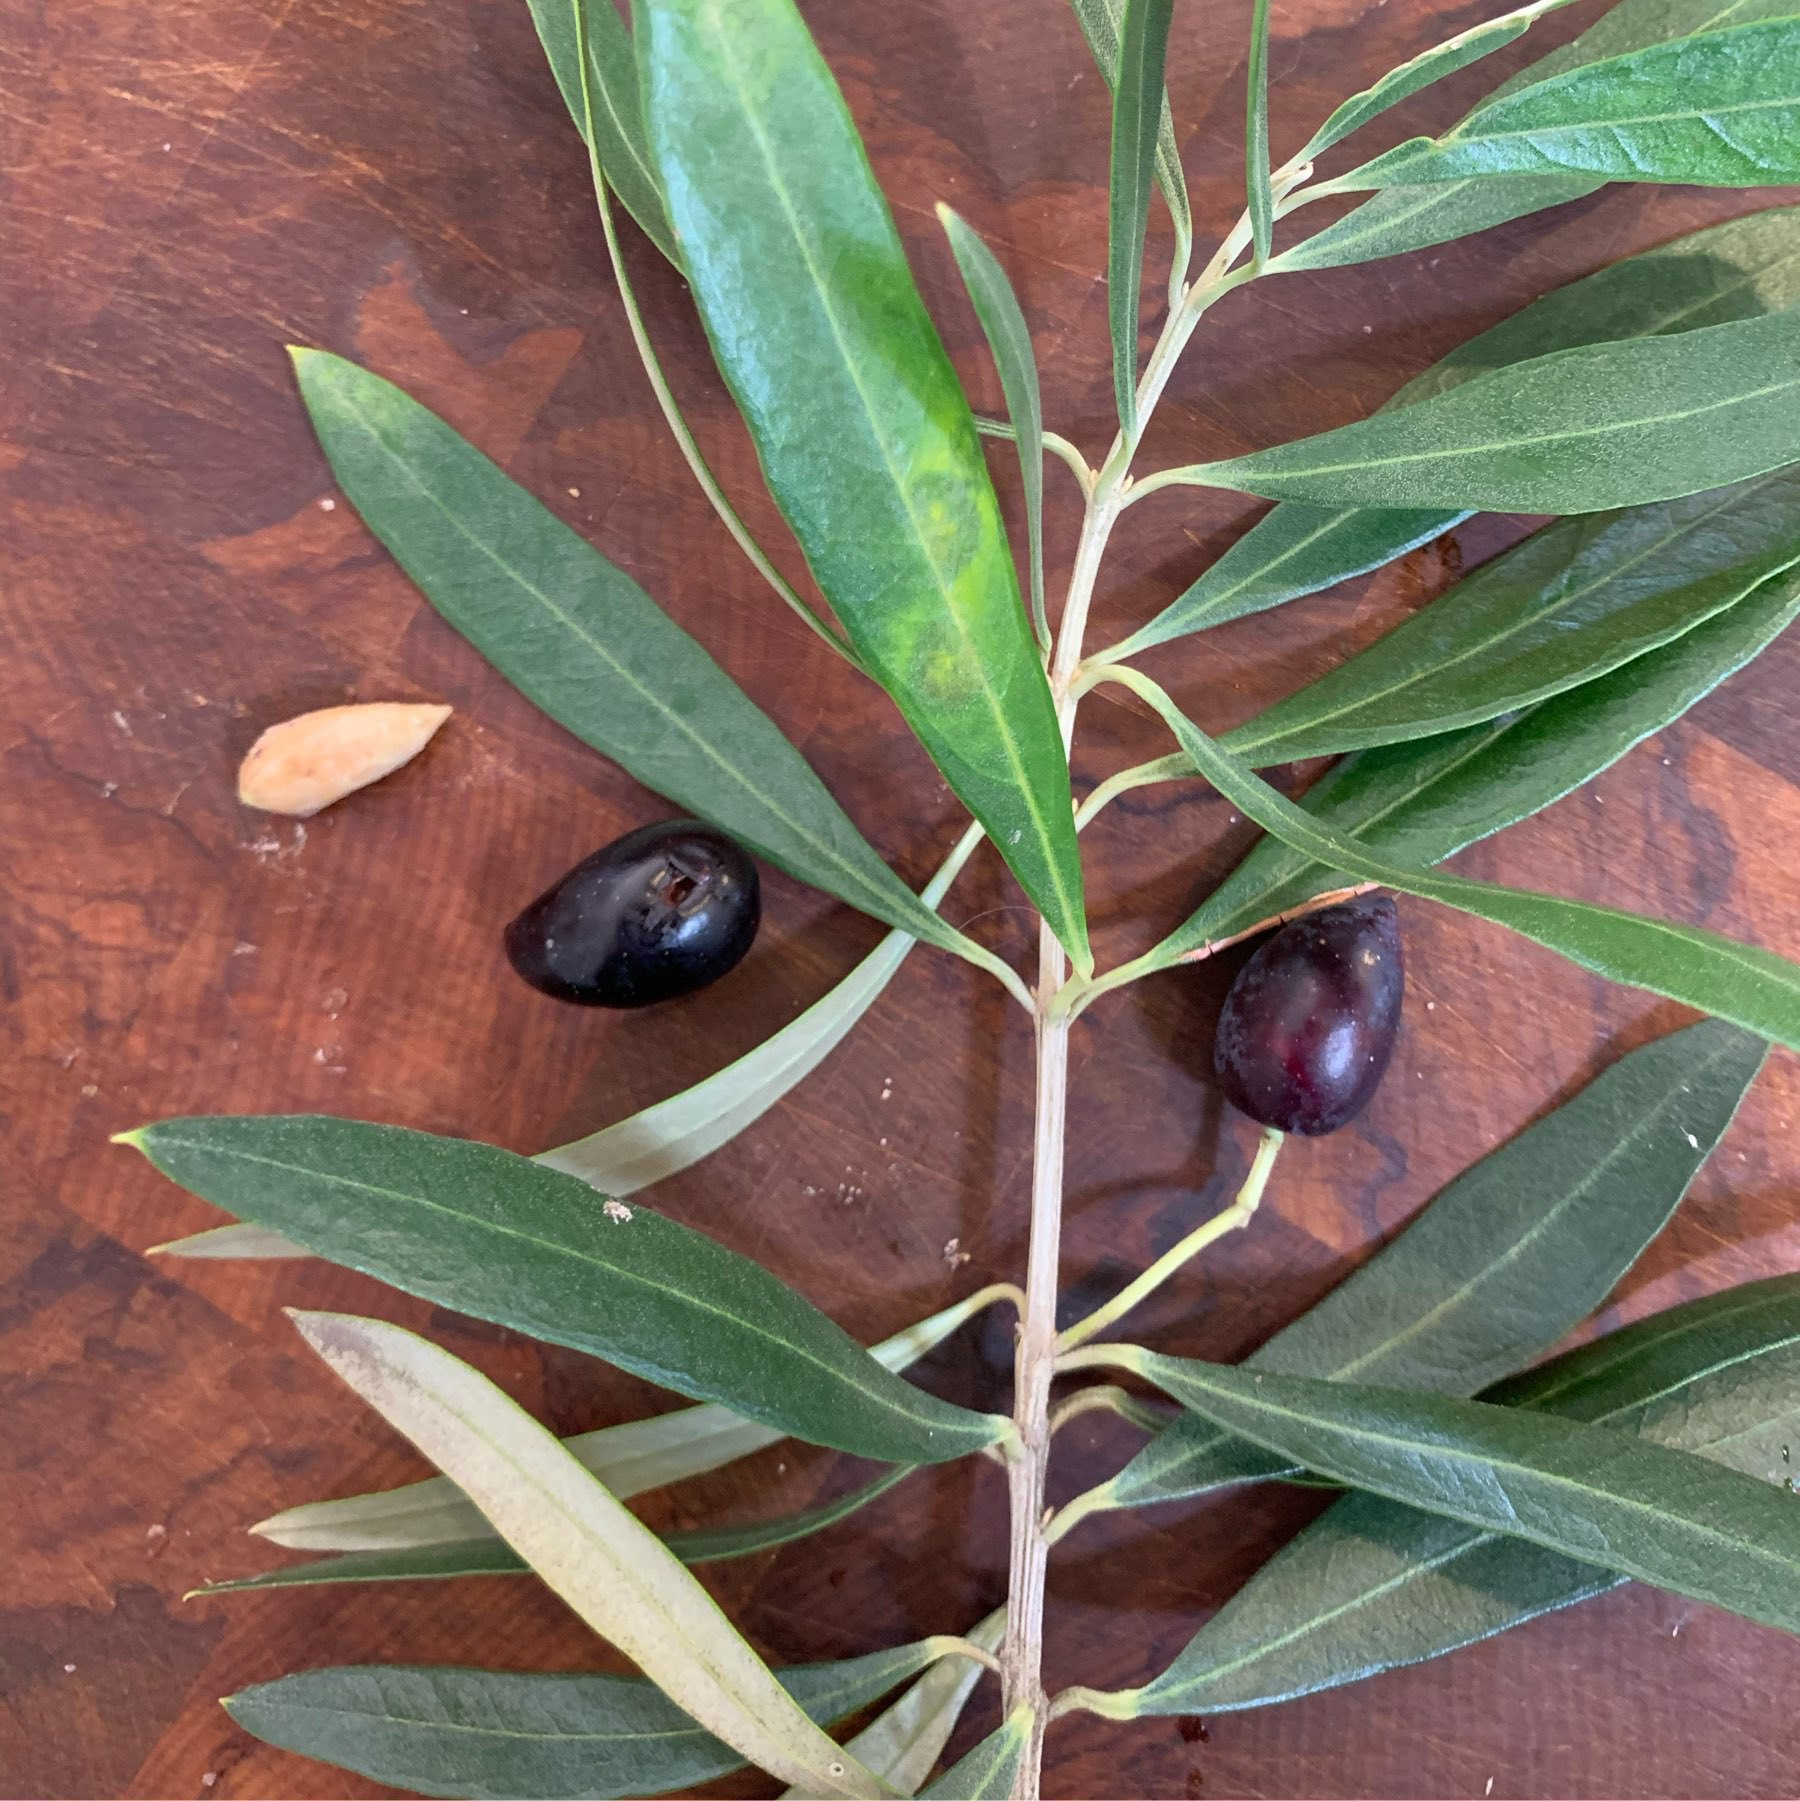 Are these what I think they are? (olives)